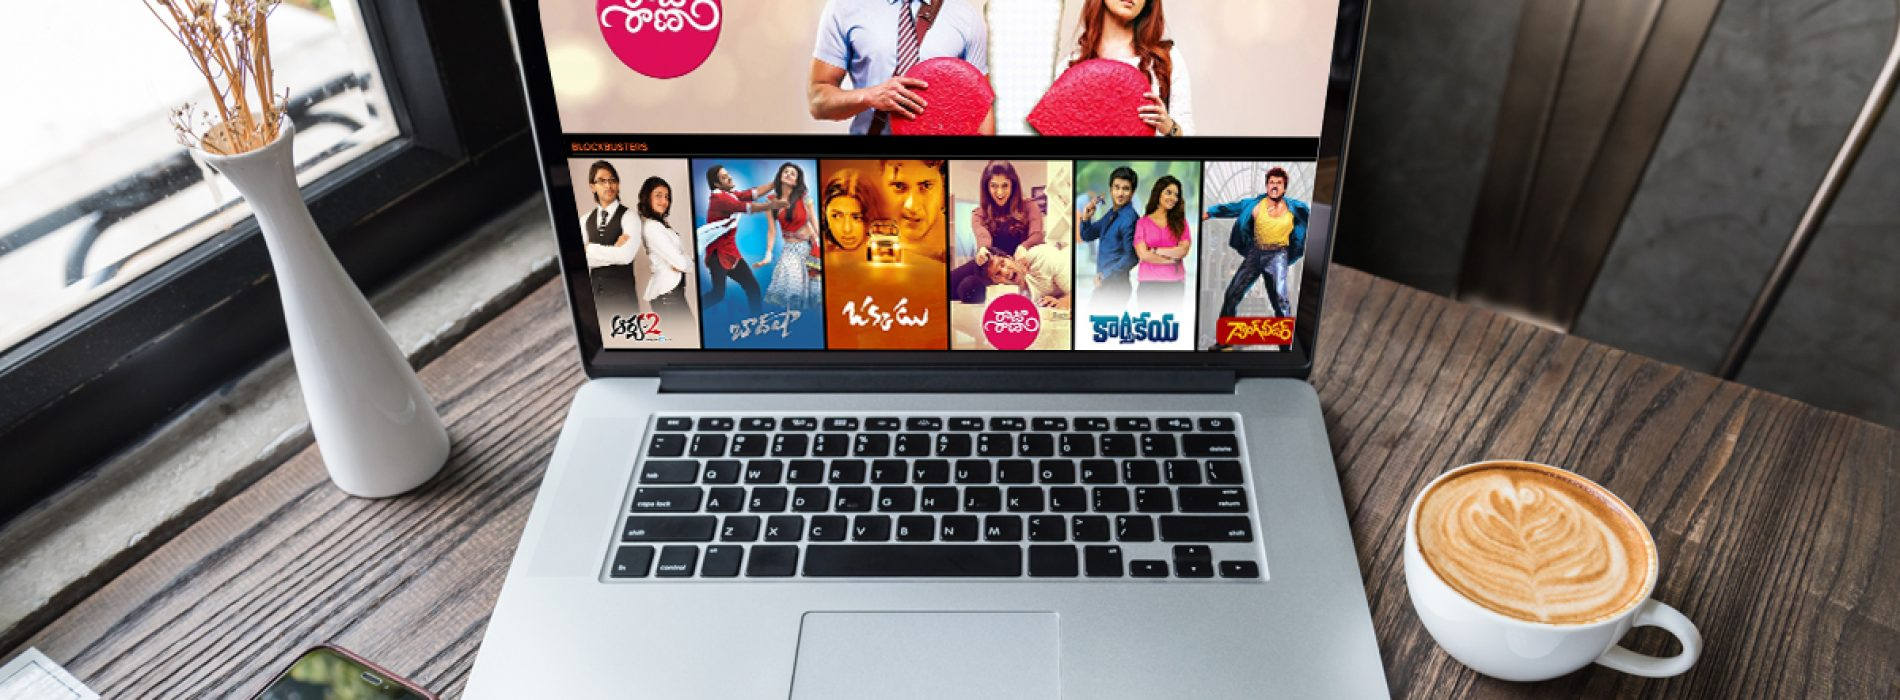 Top Telugu Love Films to Watch With The Loved One